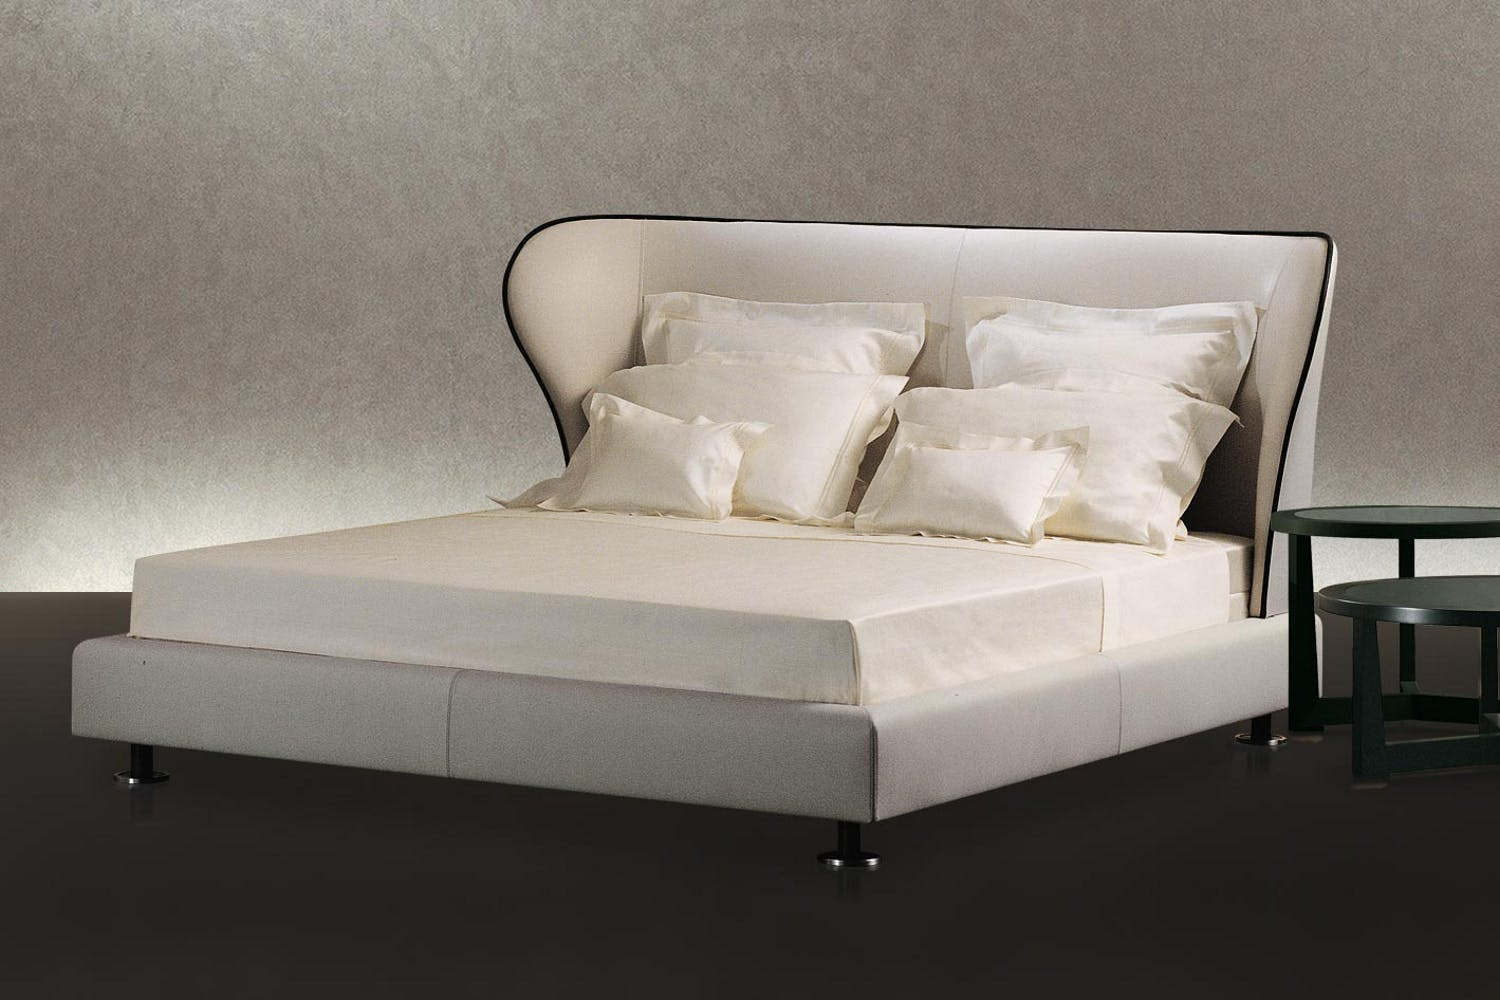 Rea Bed By Chi Wing Lo For Giorgetti Space Furniture